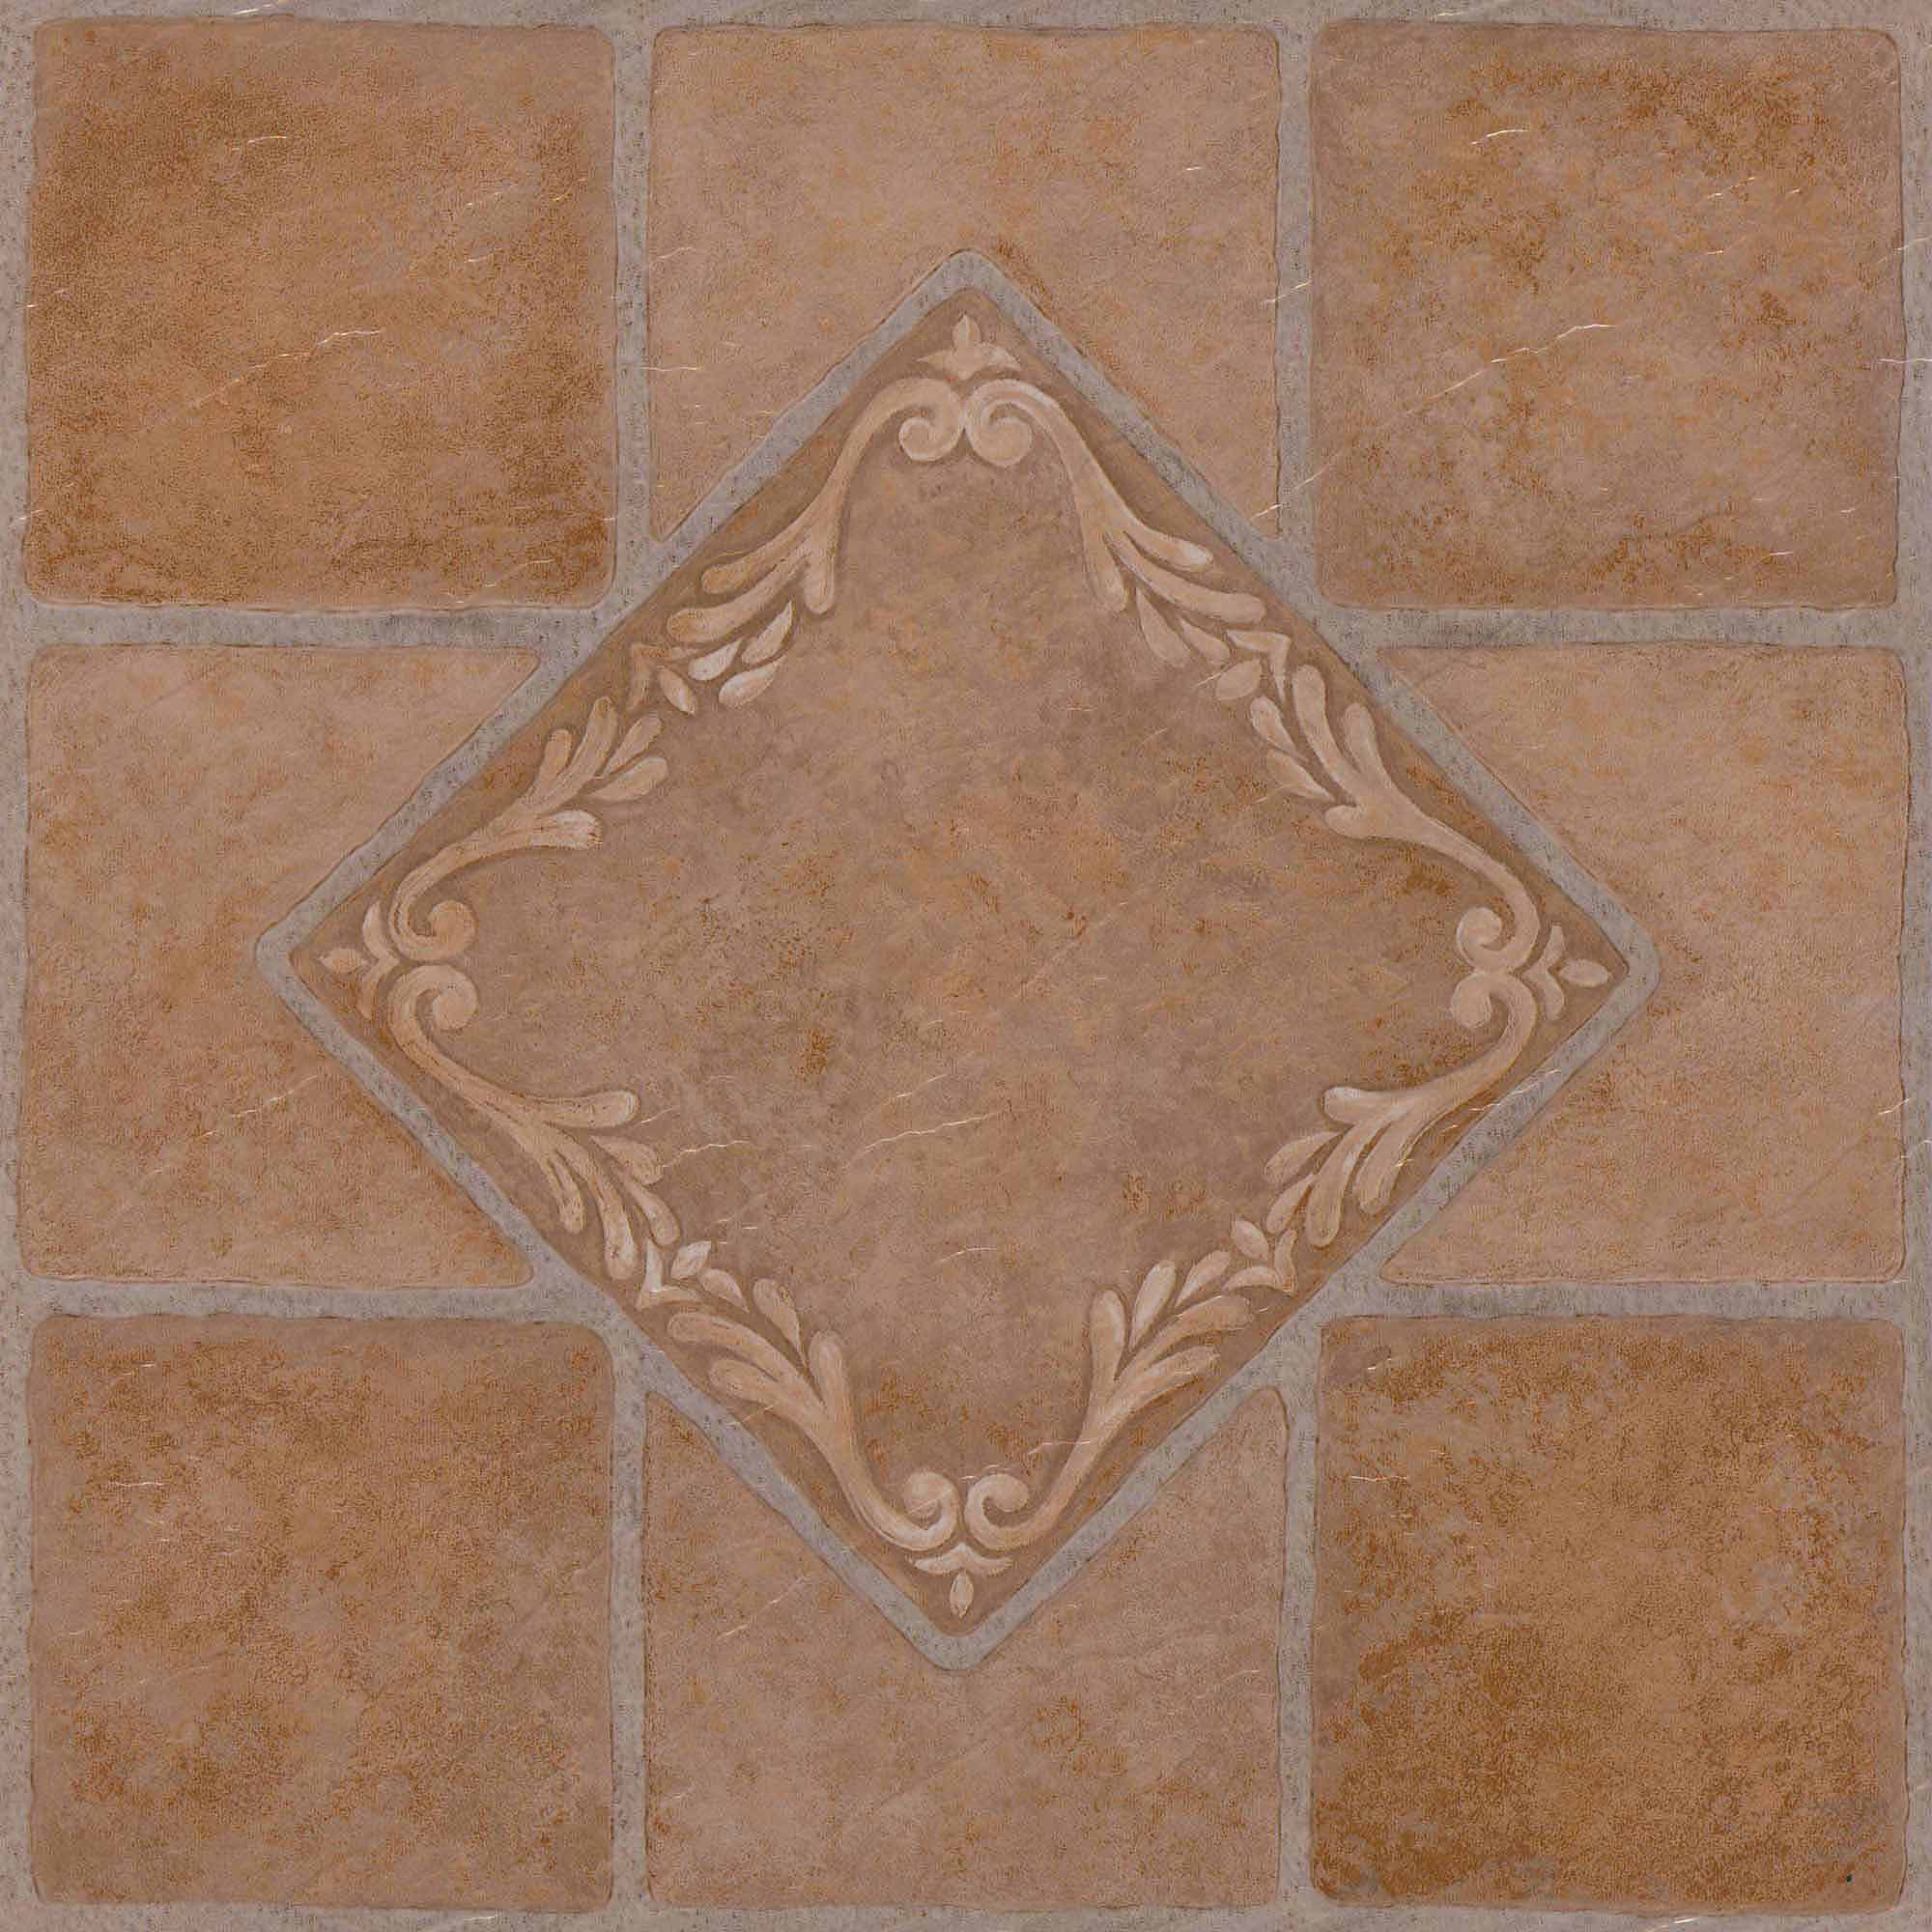 Nexus south west ceramic 12x12 self adhesive vinyl floor tile 20 do doublecrazyfo Choice Image